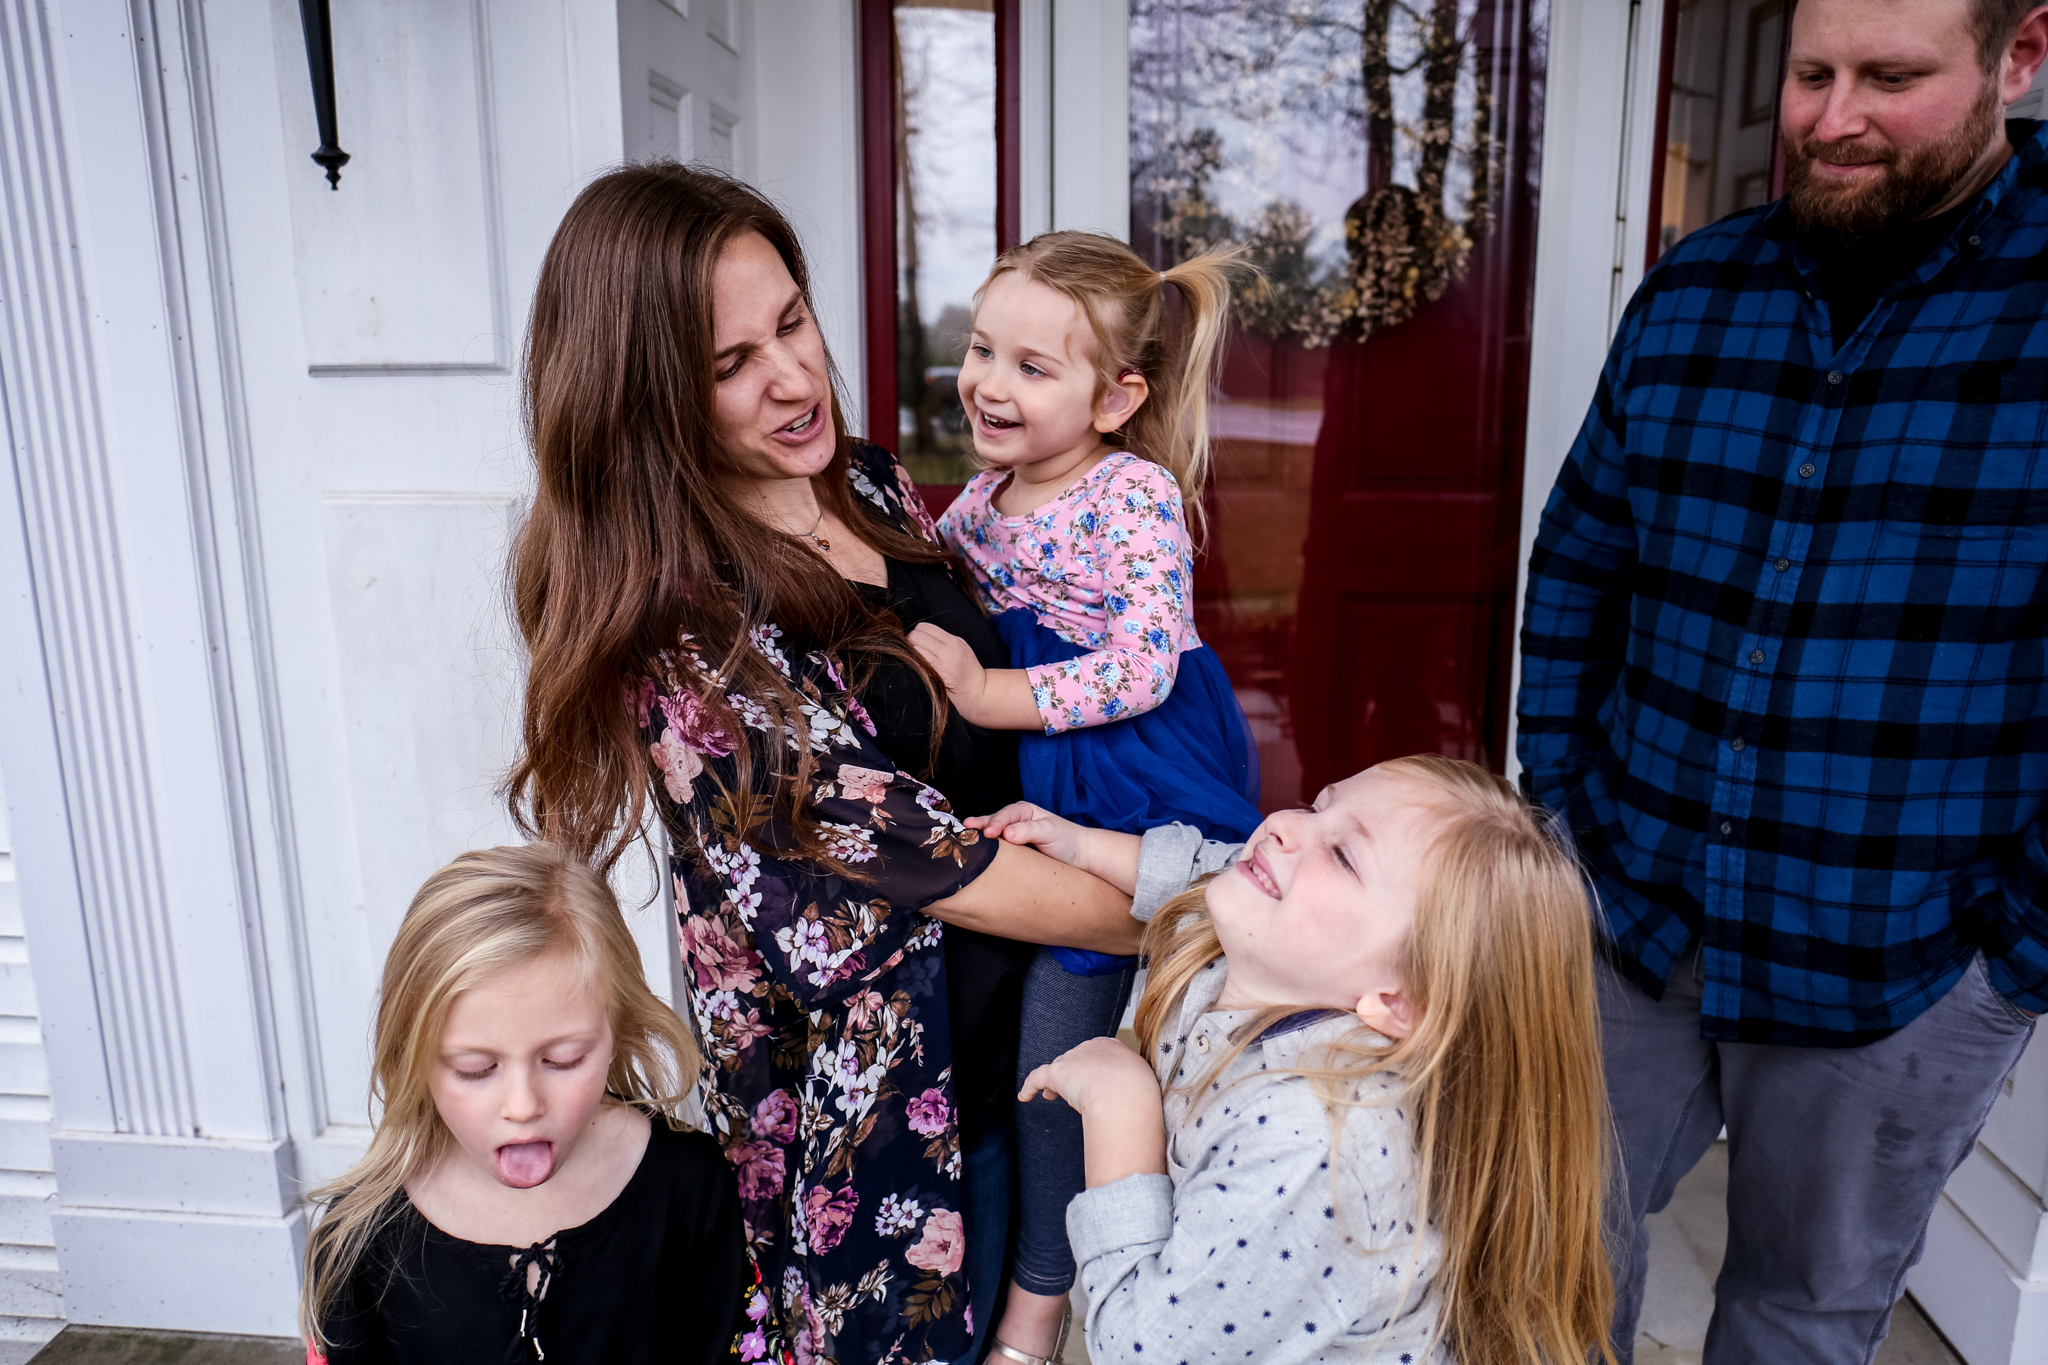 Untraditional family portraits in Lehigh Valley, Pennsylvania.